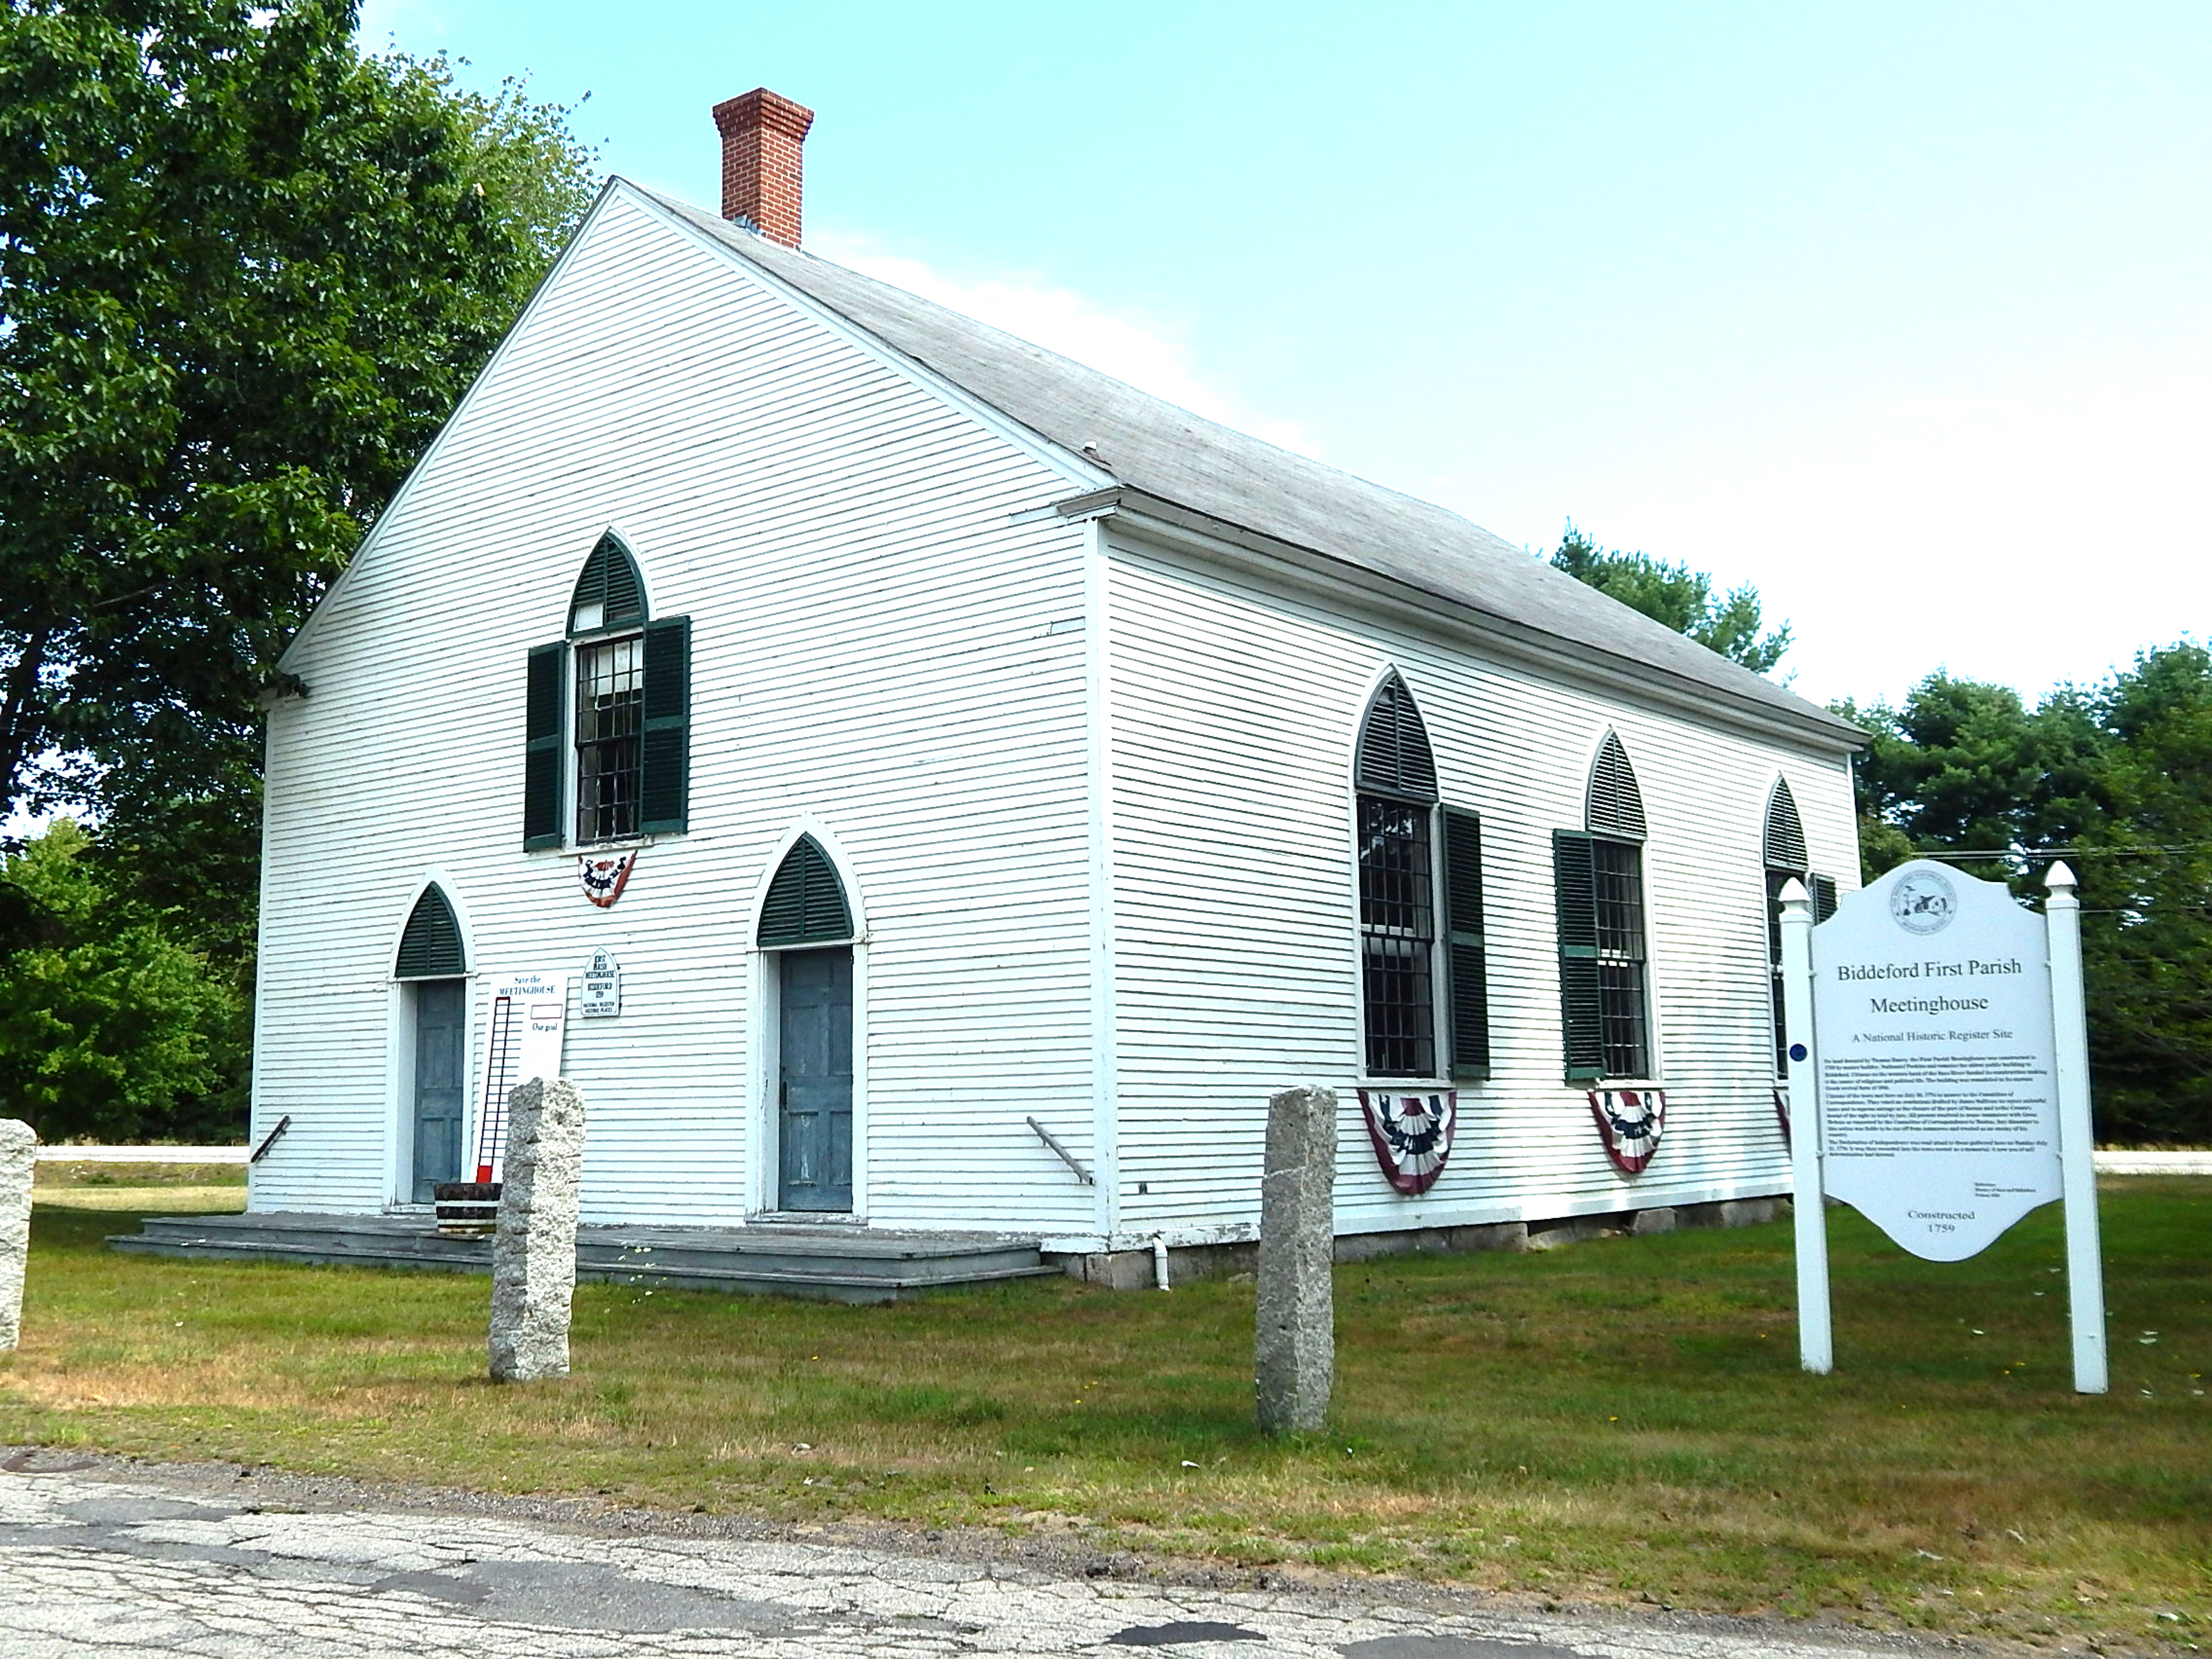 Biddeford's First Parish Meetinghouse was built in 1759 and is the oldest public building in Biddeford. A new capital campaign has been launched to preserve the structure for future generations. ED PIERCE/Journal Tribune